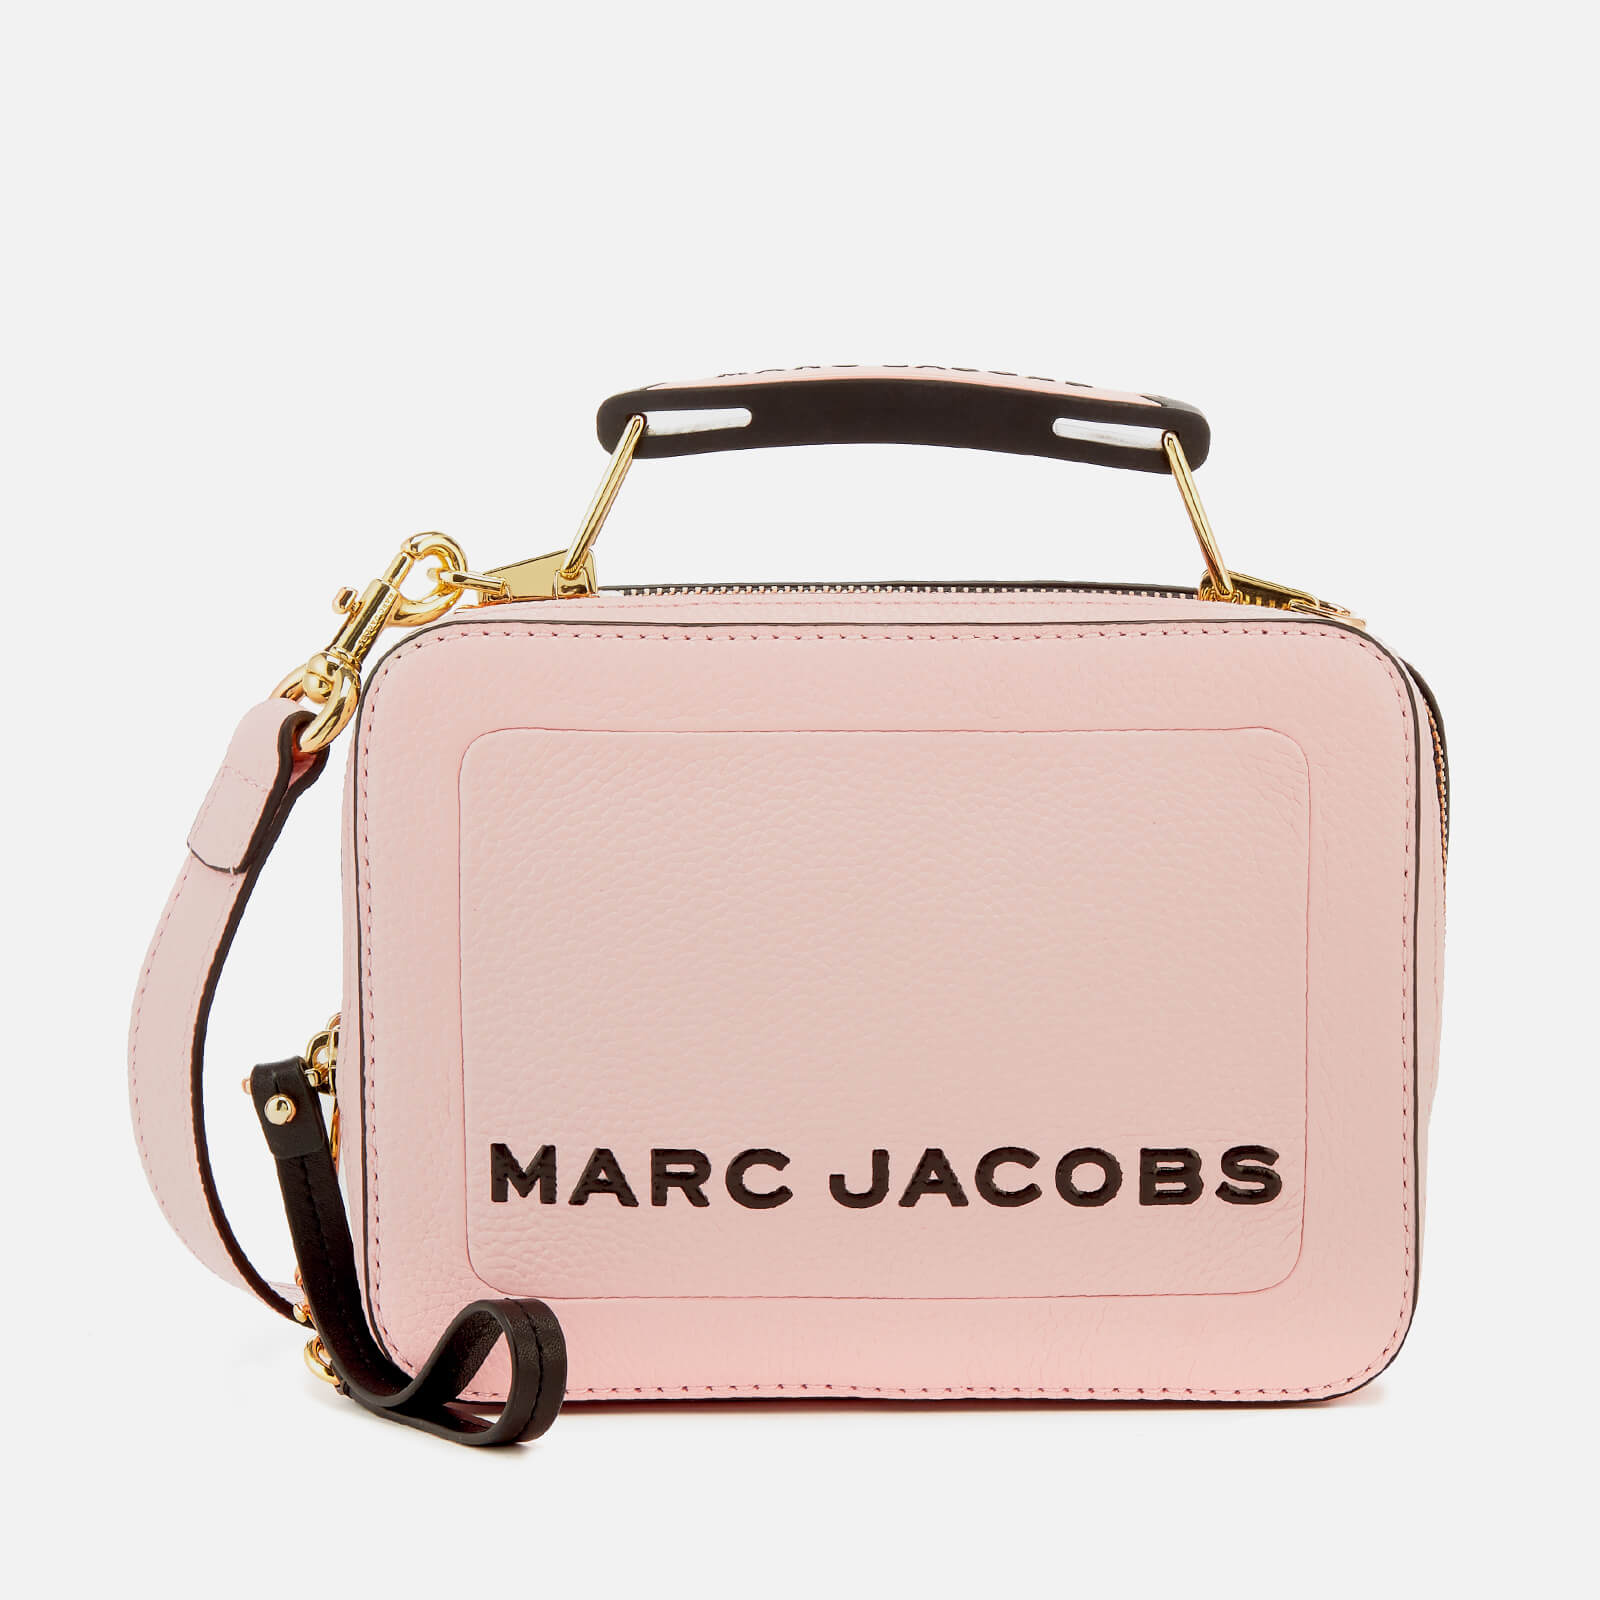 13f00914c22 Marc Jacobs Women's The Box 20 Cross Body Bag - Blush - Free UK Delivery  over £50